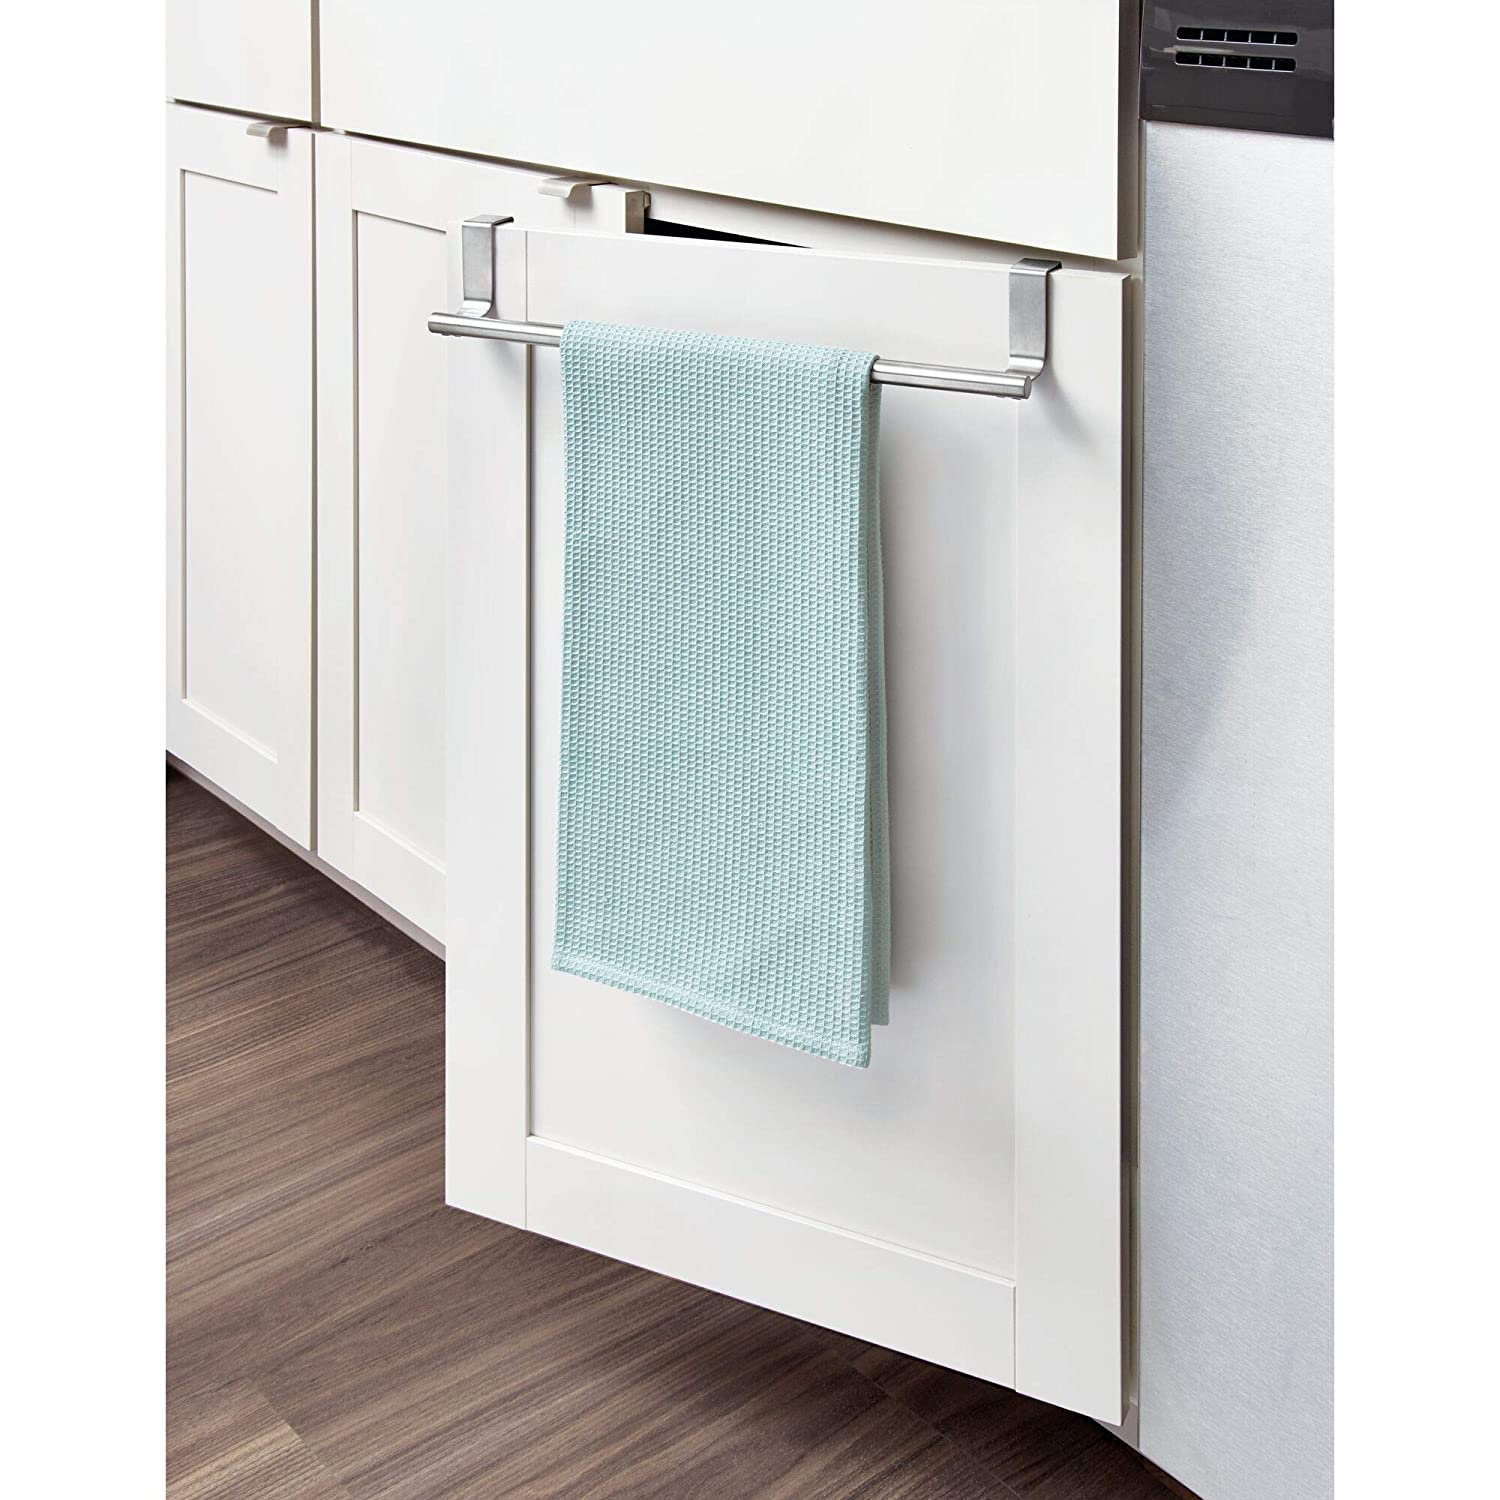 Amazon.com: InterDesign Forma Over-the-Cabinet barra ...